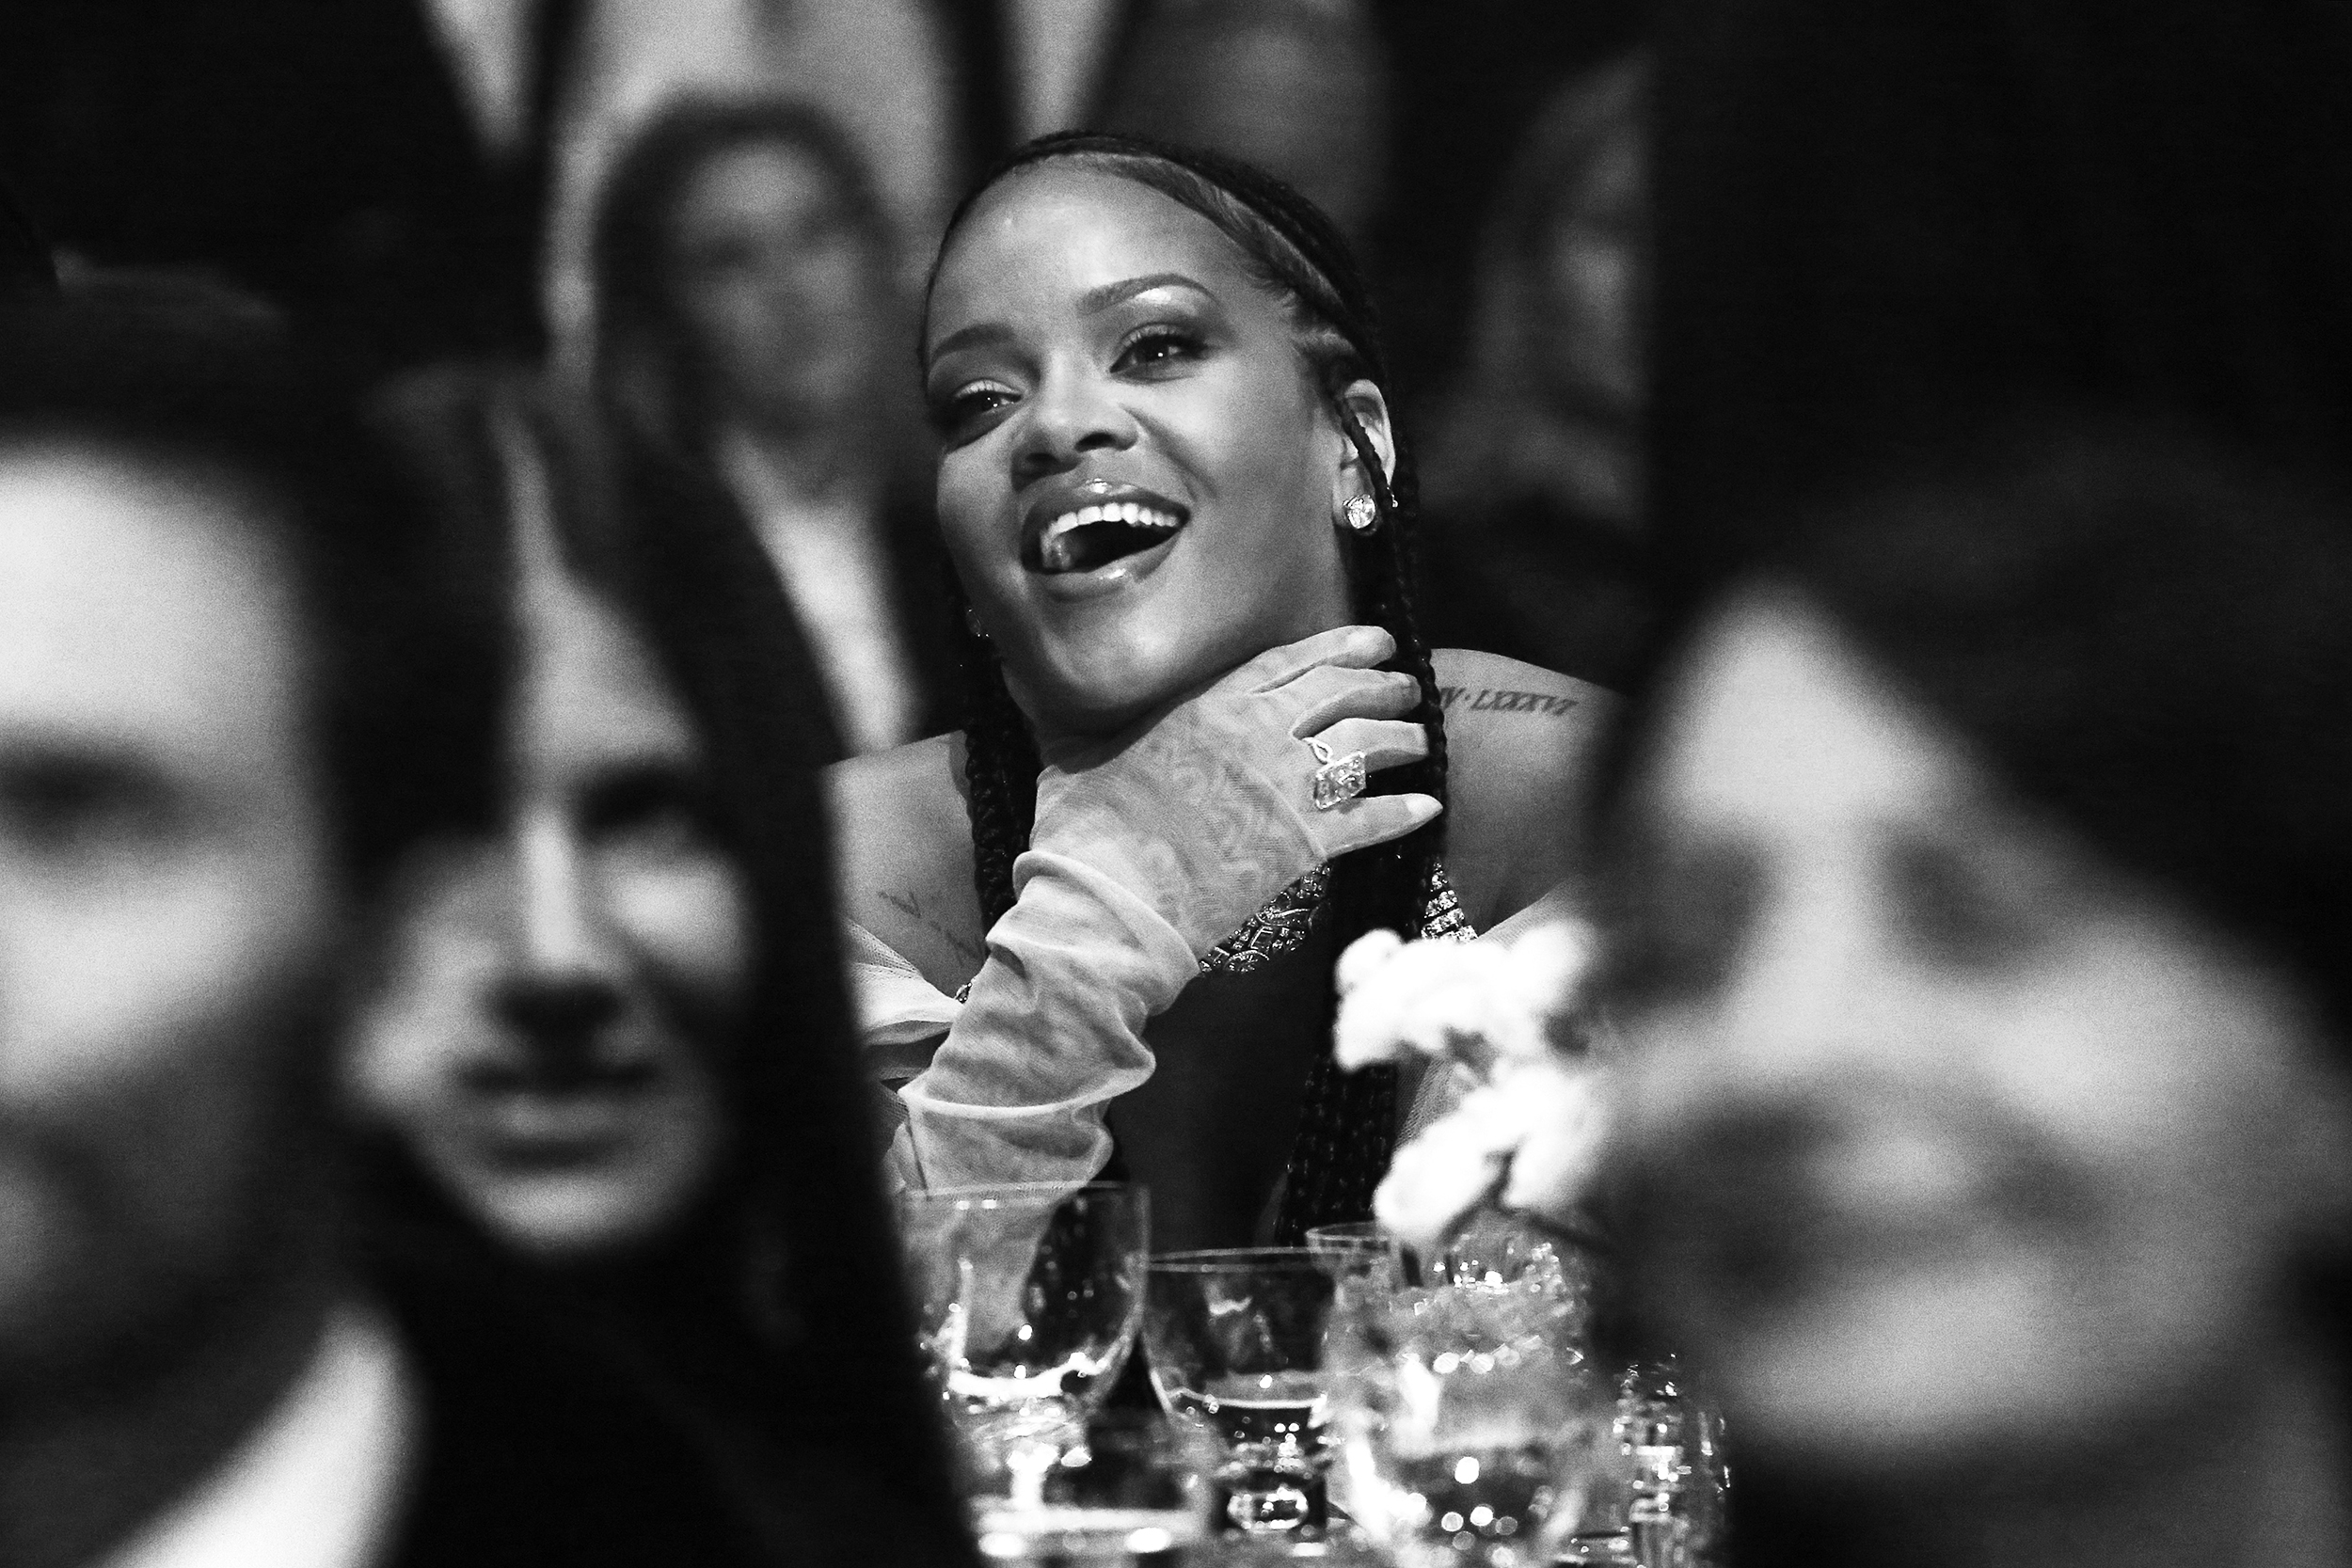 Rihanna is now a billionaire, and second only to Oprah Winfrey as wealthiest female entertainer